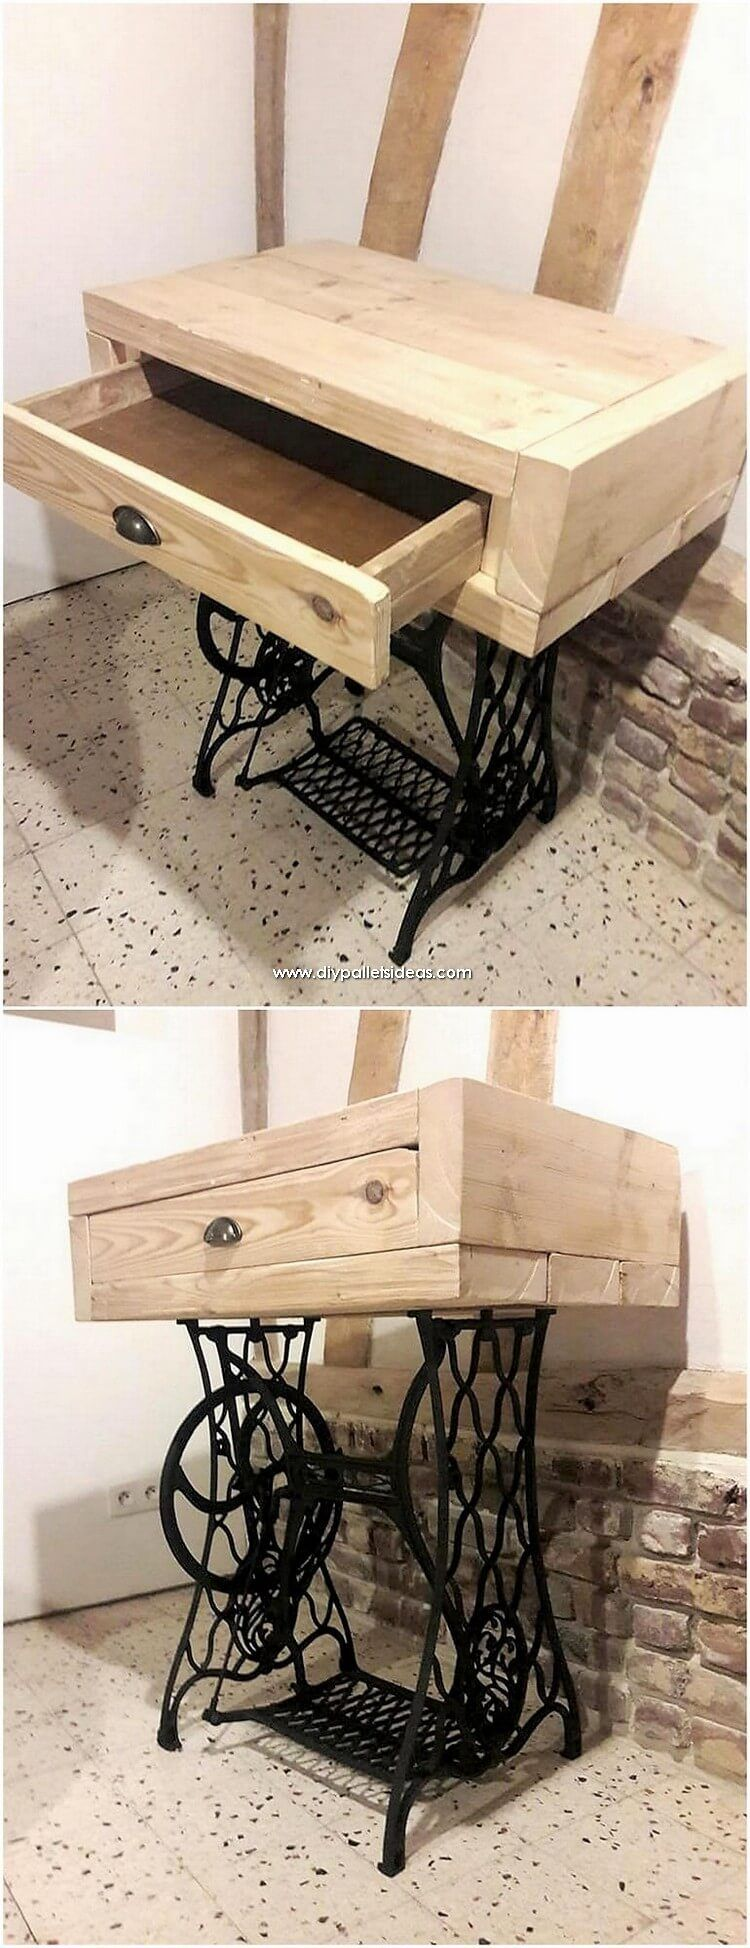 Pleasant Ideas for Wooden Pallets Recycling #oldpalletsforcrafting